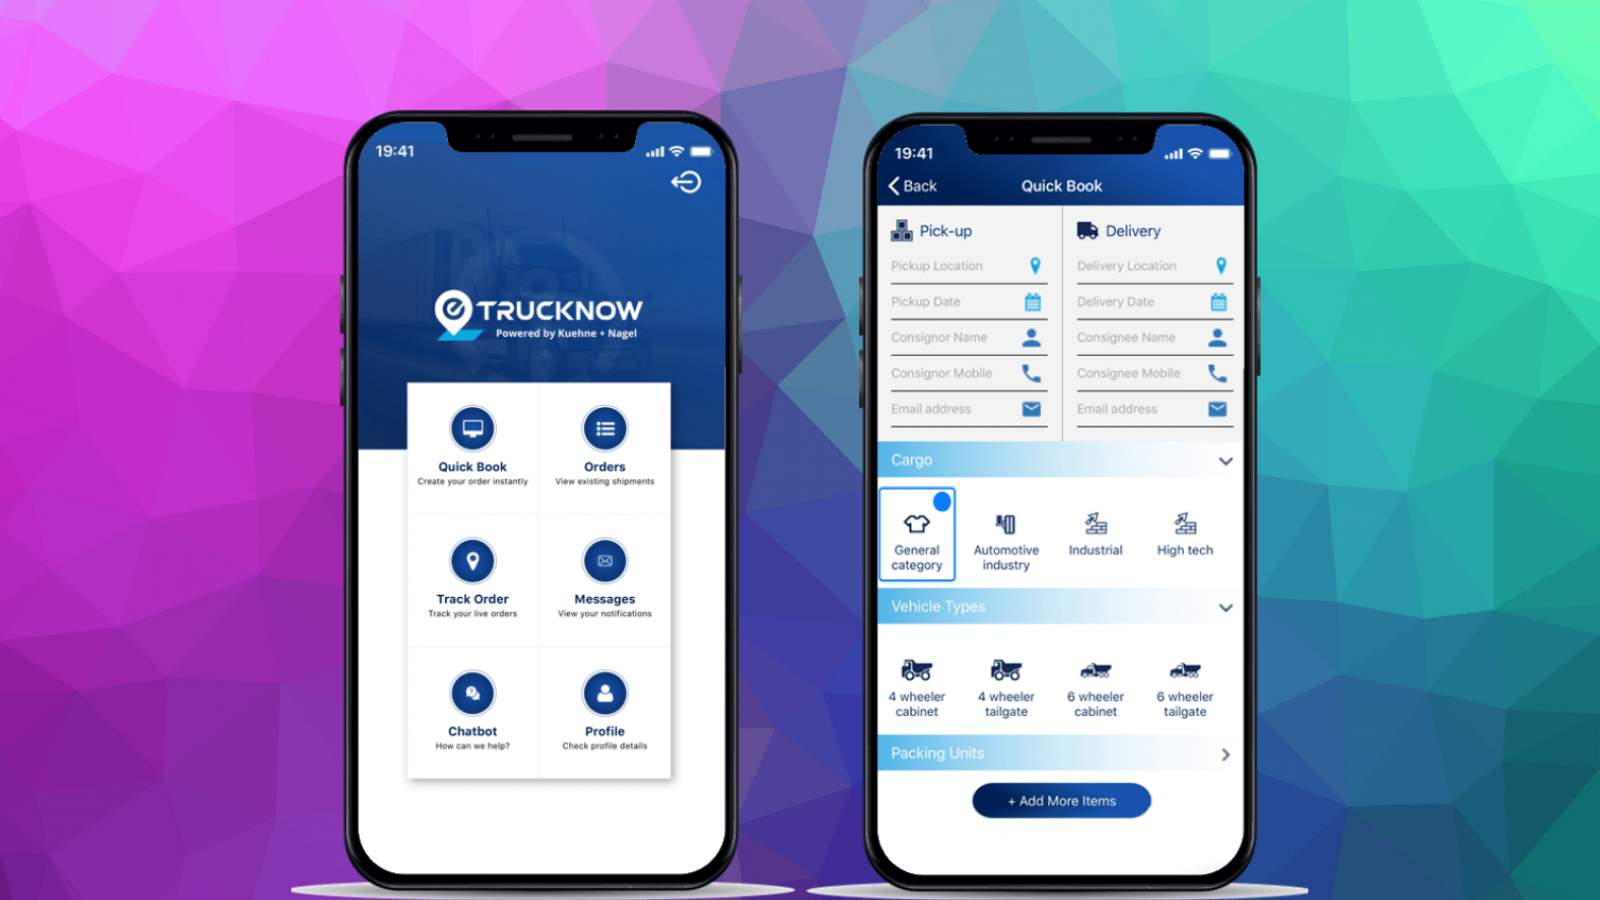 Kuehne+Nagel launches cloud-based road logistics platform eTrucknow in India